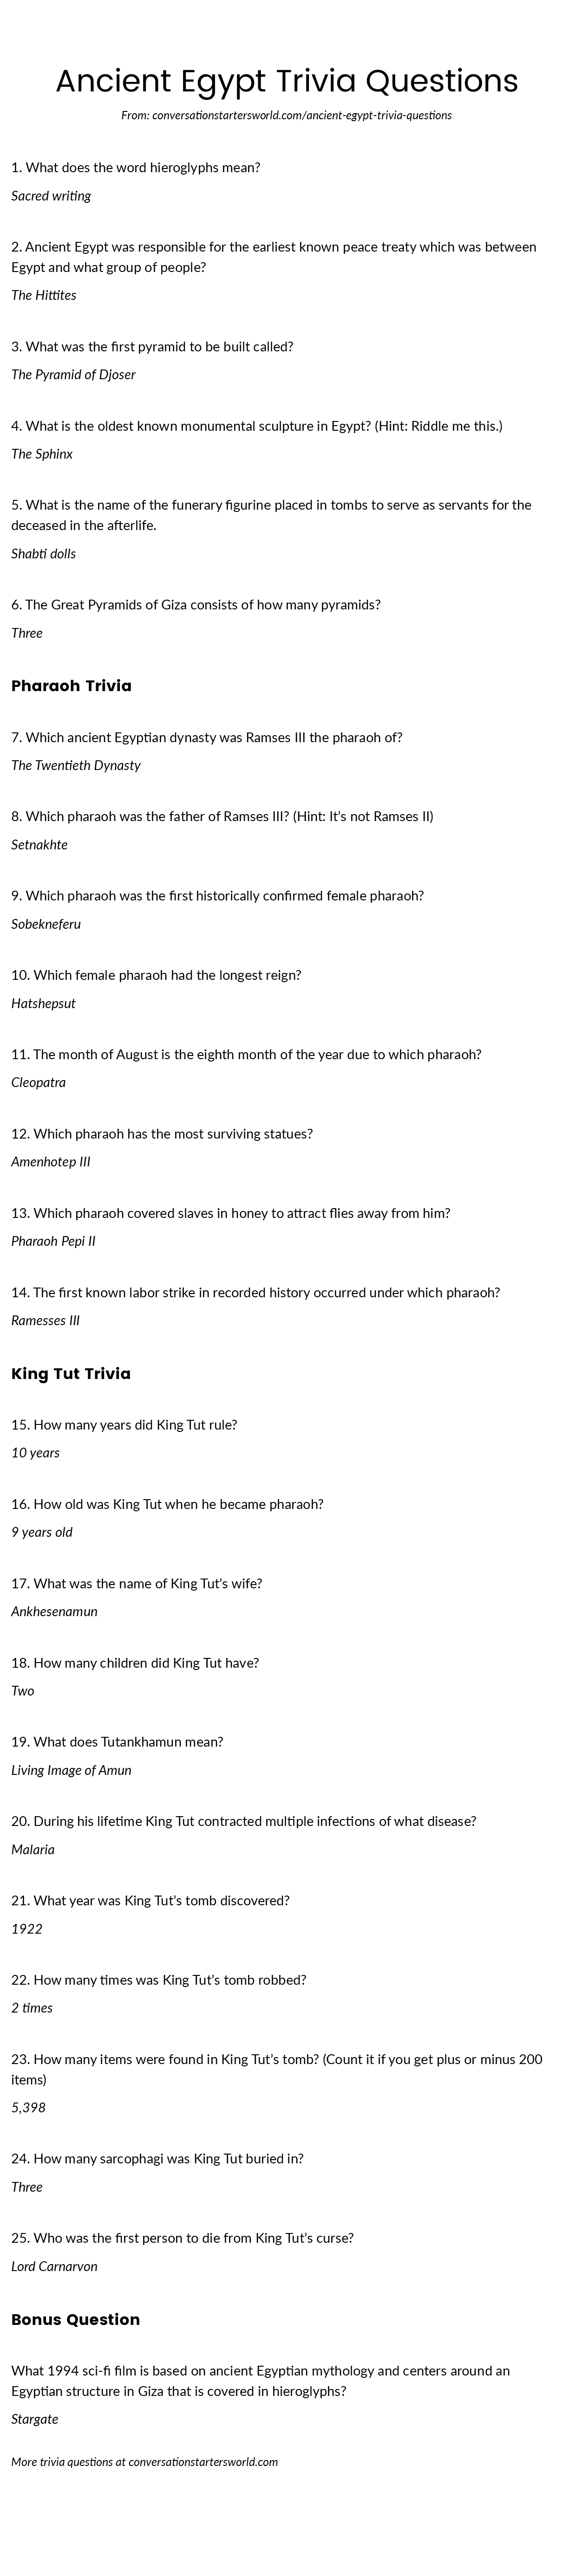 Ancient Egypt Trivia Questions and Answers - Can you answer